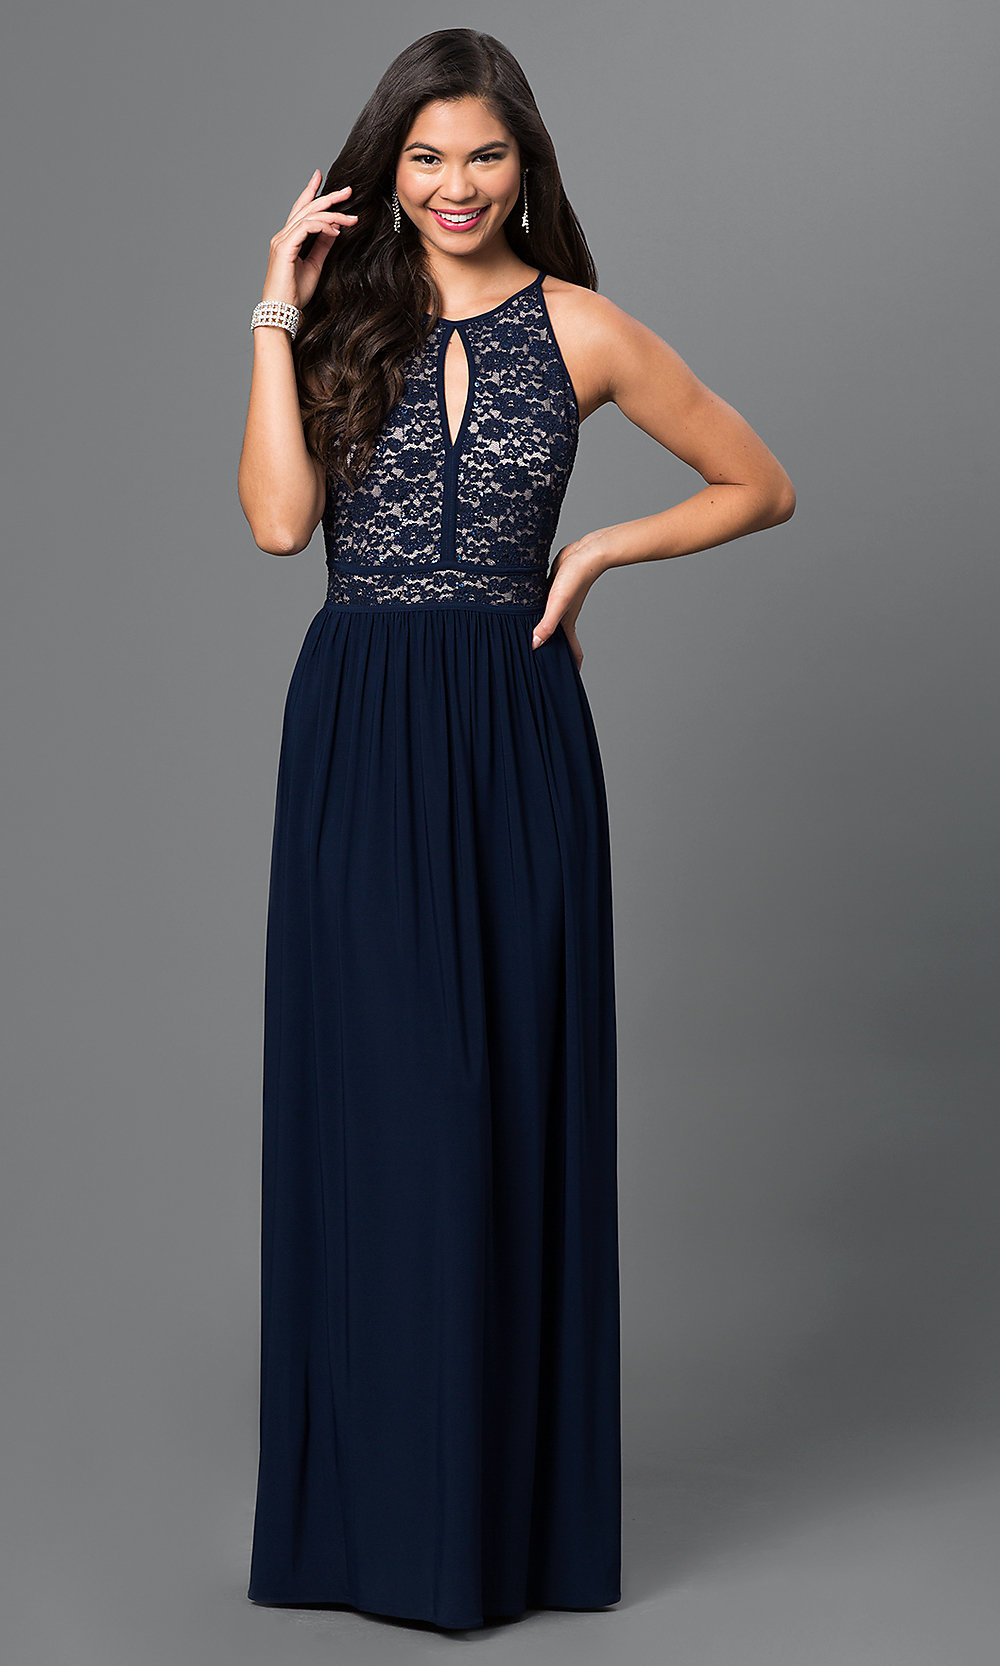 Navy-Blue Lace-Top Morgan Prom Dress - PromGirl